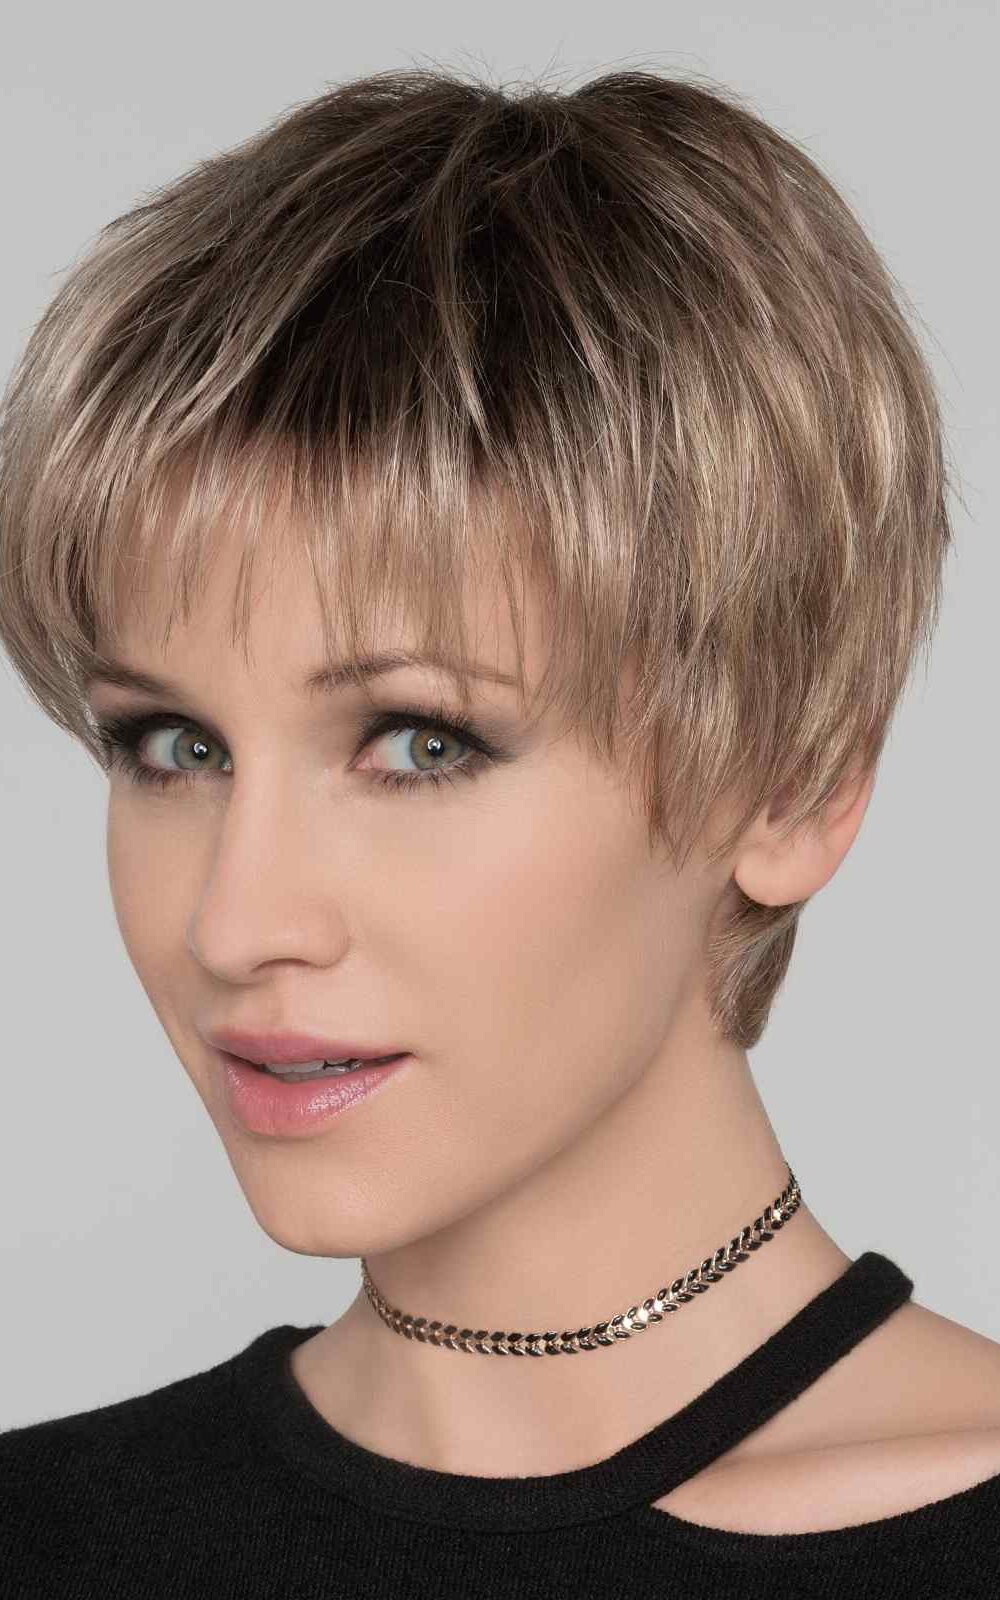 Stop Hi Tec | his look can be easily finger styled to fit a host of different looks. The monofilament top allows the longer front strands to be parted to the left, the right, or in the center.